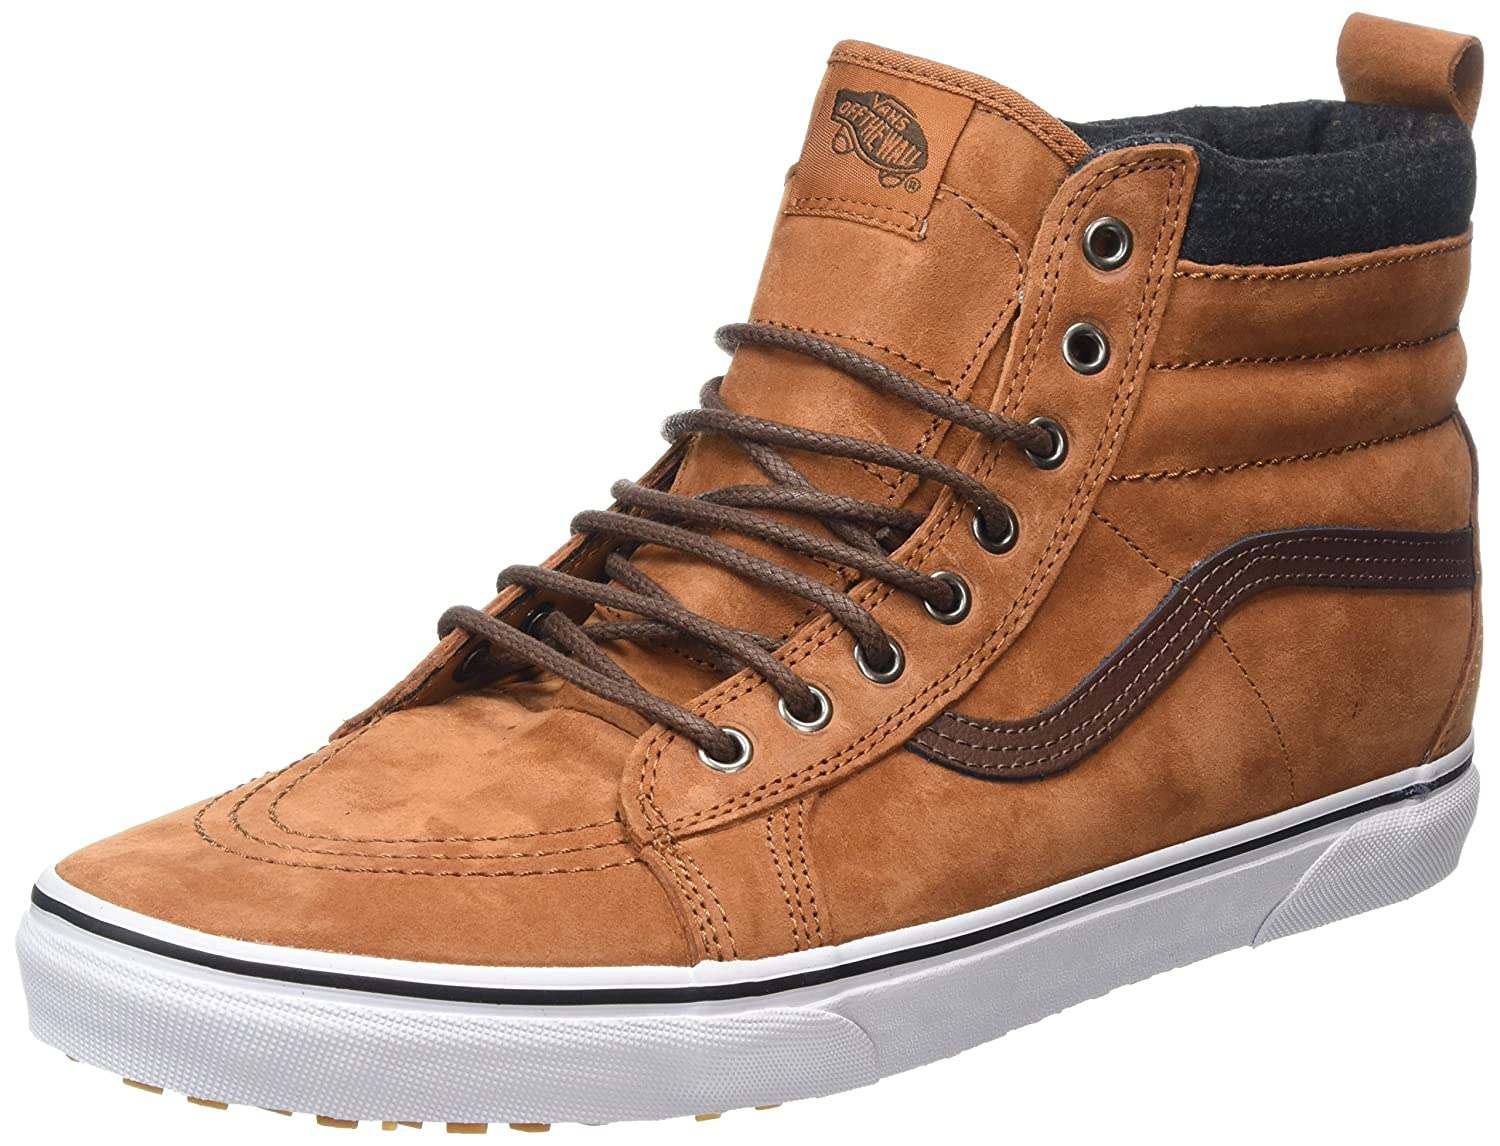 Vans Sk8-Hi Unisex Casual High-Top Skate Shoes, Comfortable and Durable in Signature Waffle Rubber Sole B019KVWXUY 8.5 M US Women / 7 M US Men|Glazed Ginger/Plaid